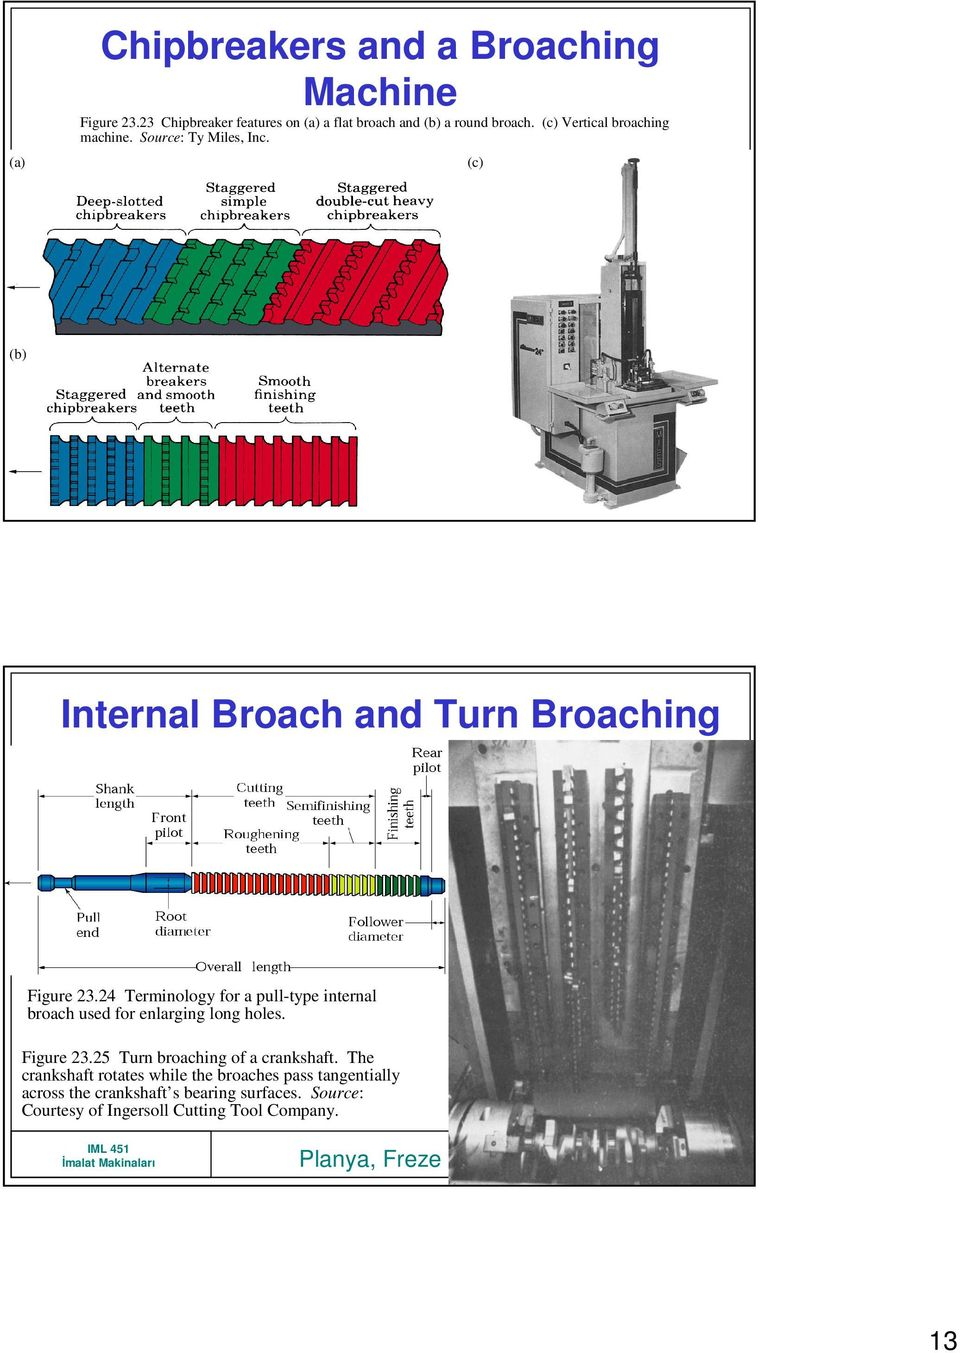 24 Terminology for a pull-type internal broach used for enlarging long holes. Figure 23.25 Turn broaching of a crankshaft.